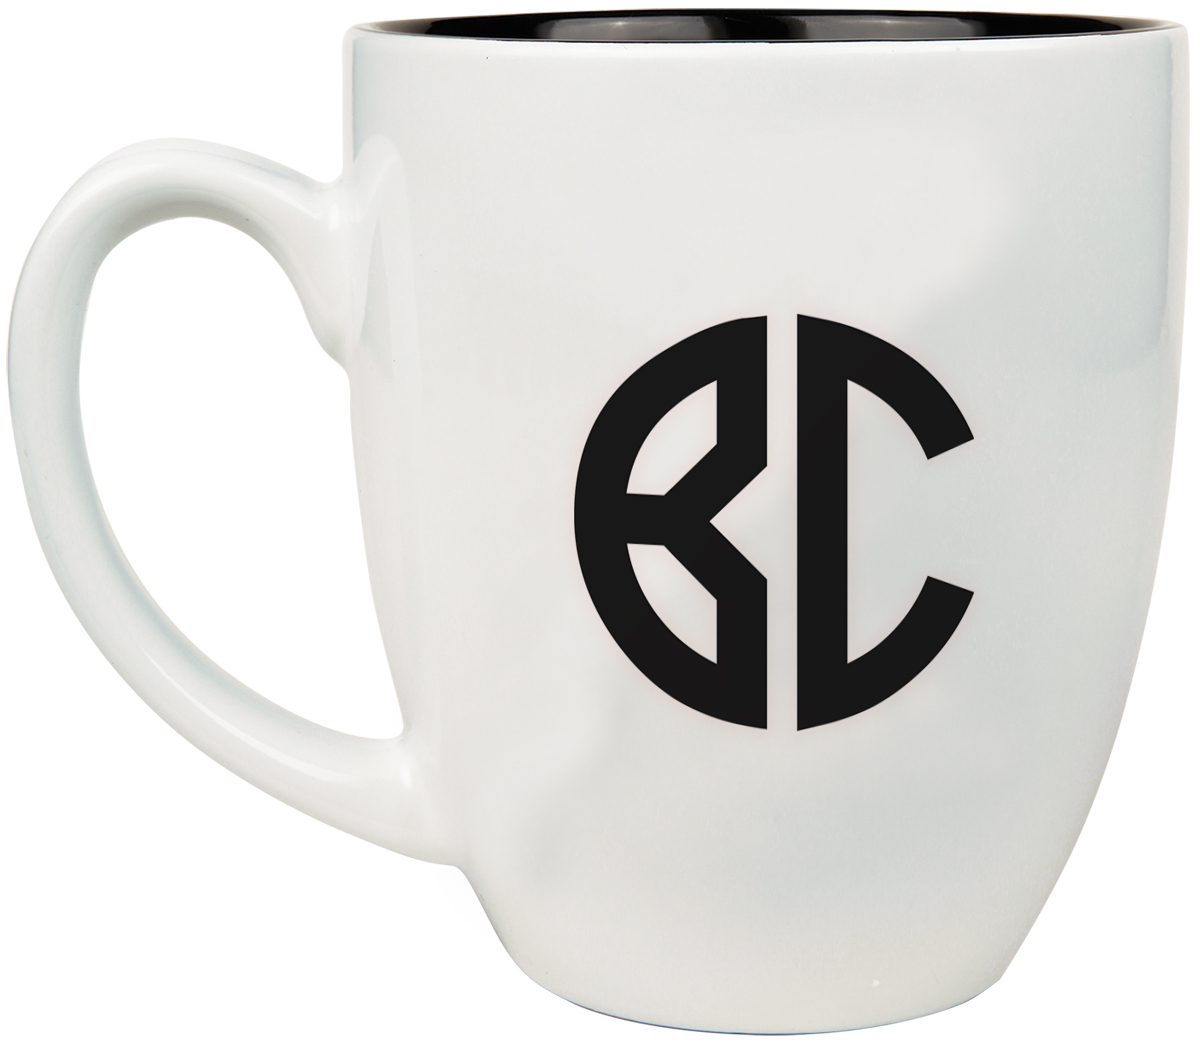 Two Initial Monogram Ceramic Coffee Cup